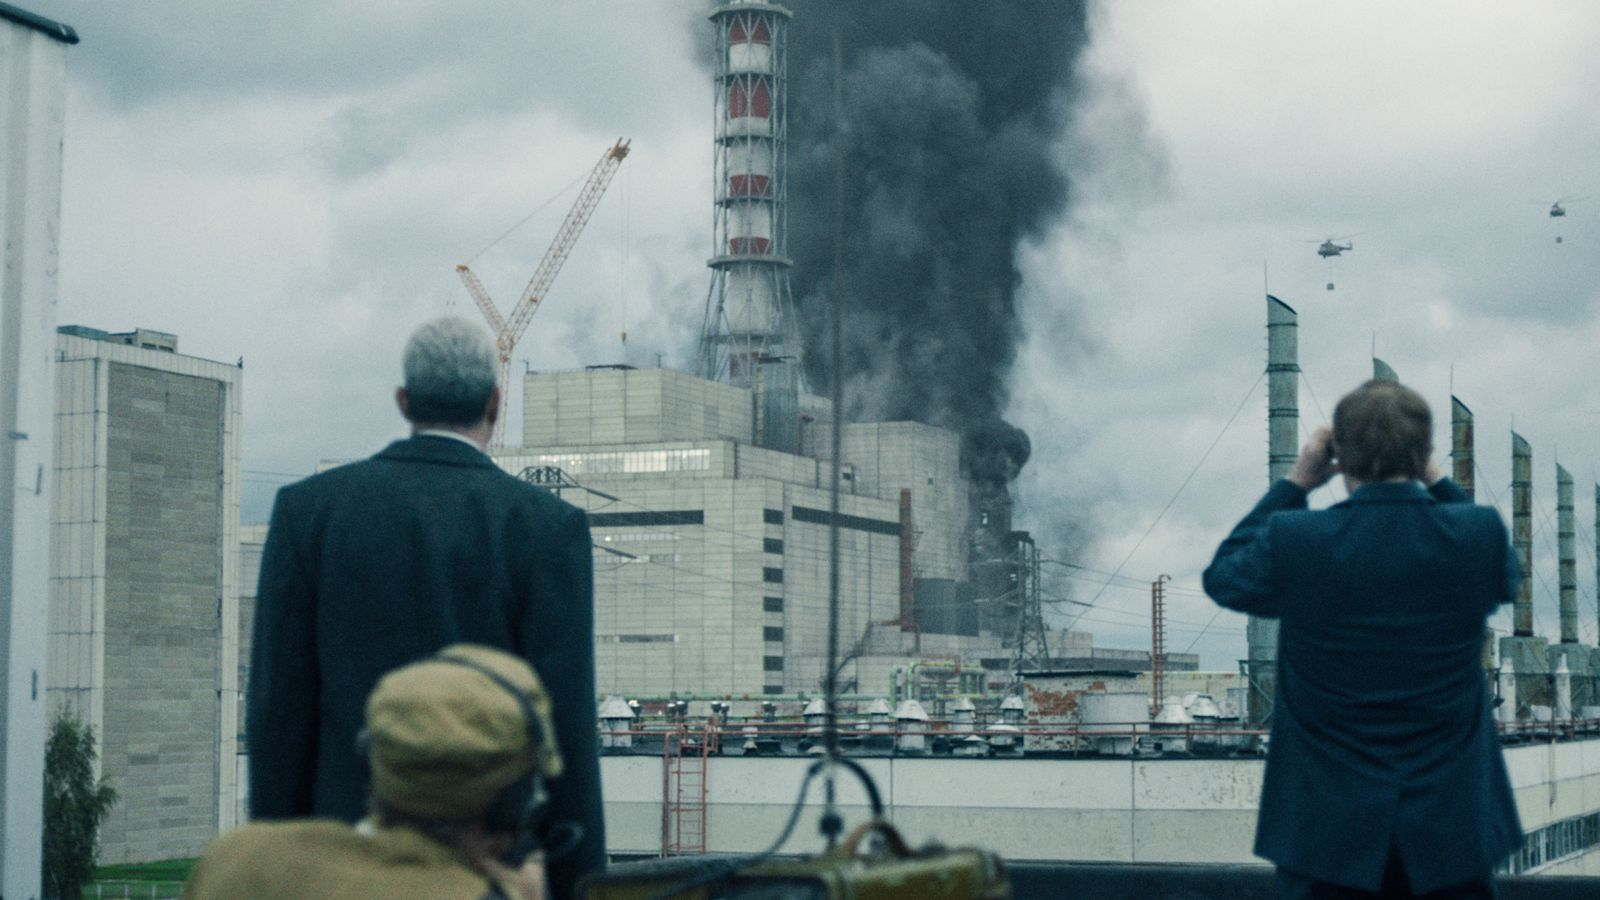 Russia to make its own version of Chernobyl – blaming a 'CIA saboteur'